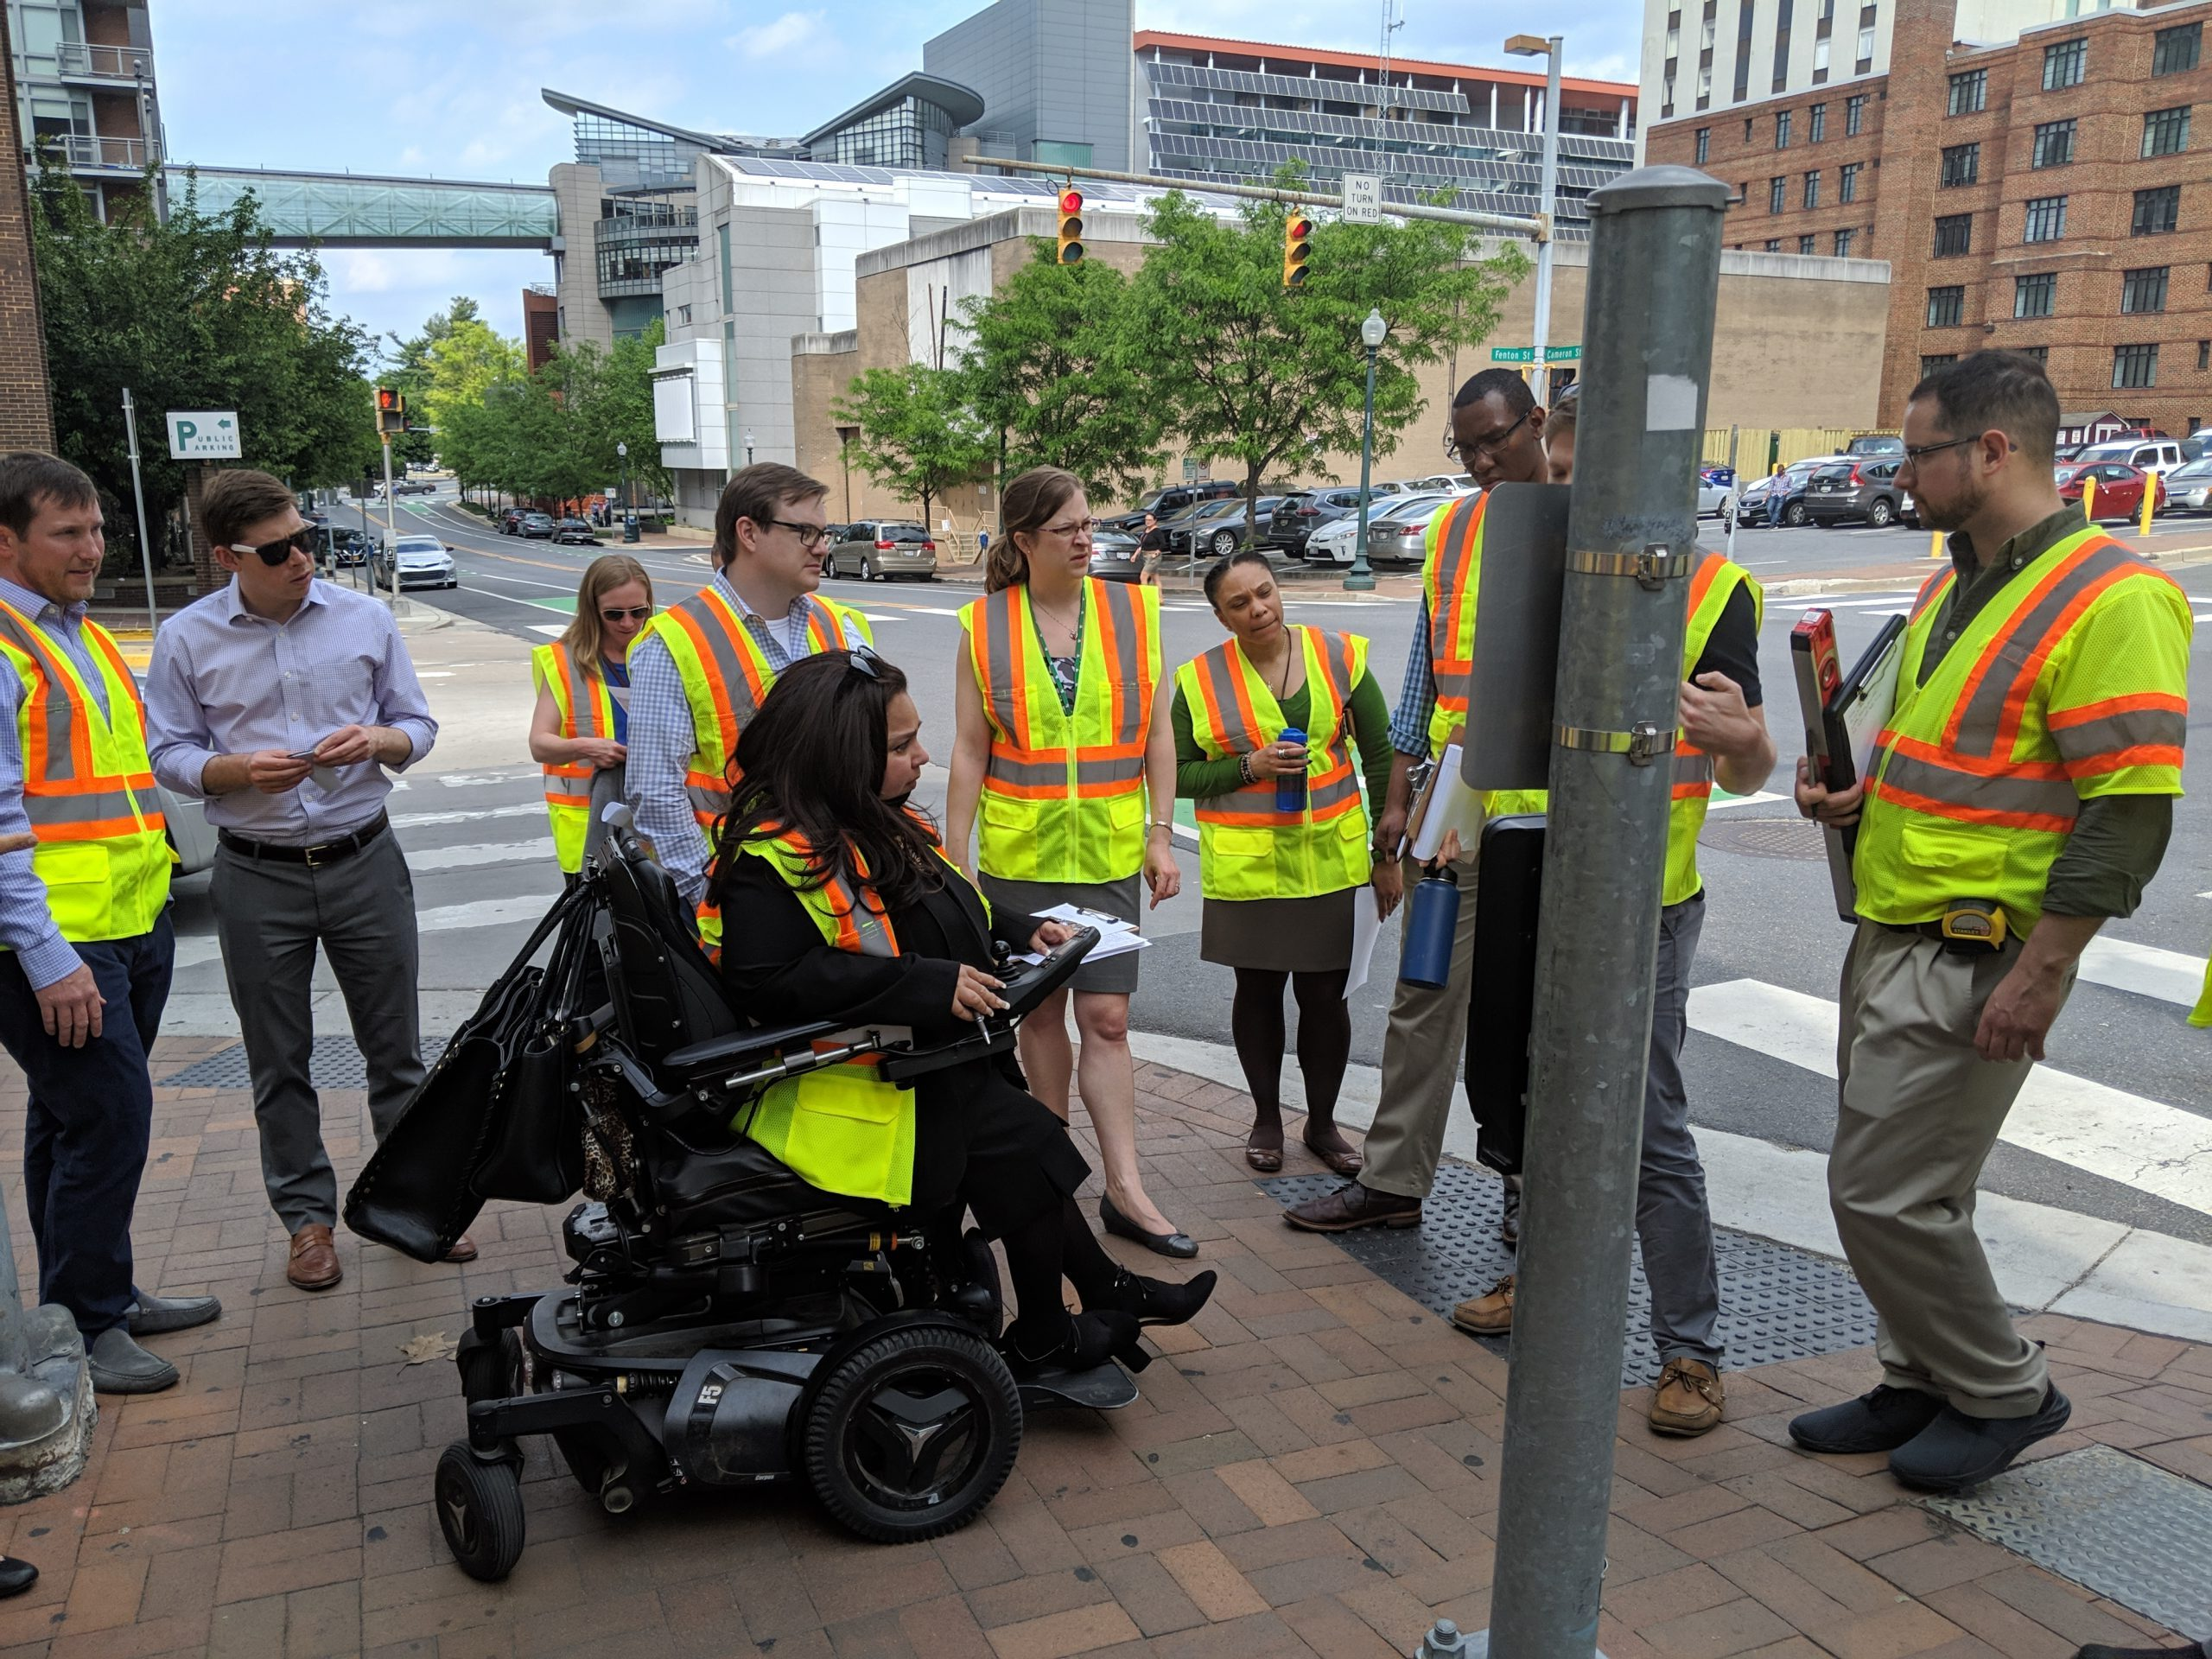 Pedestrian audit attendees in Silver Spring inspect an Accessible Pedestrian Signal while wearing reflective vests.